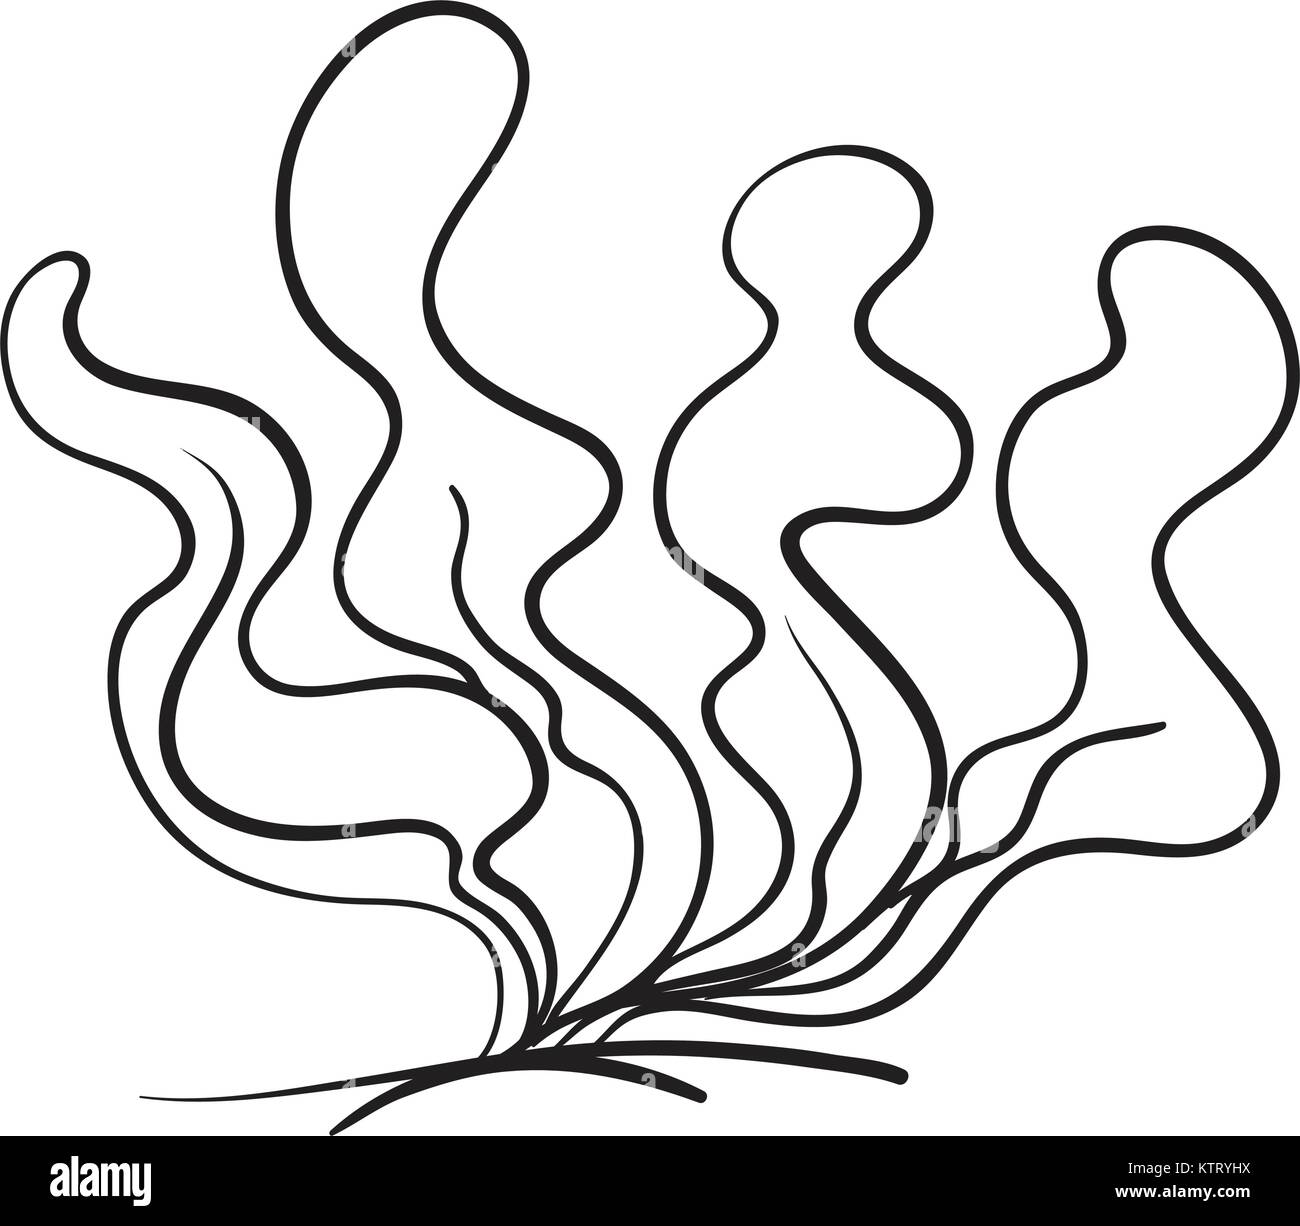 Underwater Plant Black And White Stock Photos Images Alamy